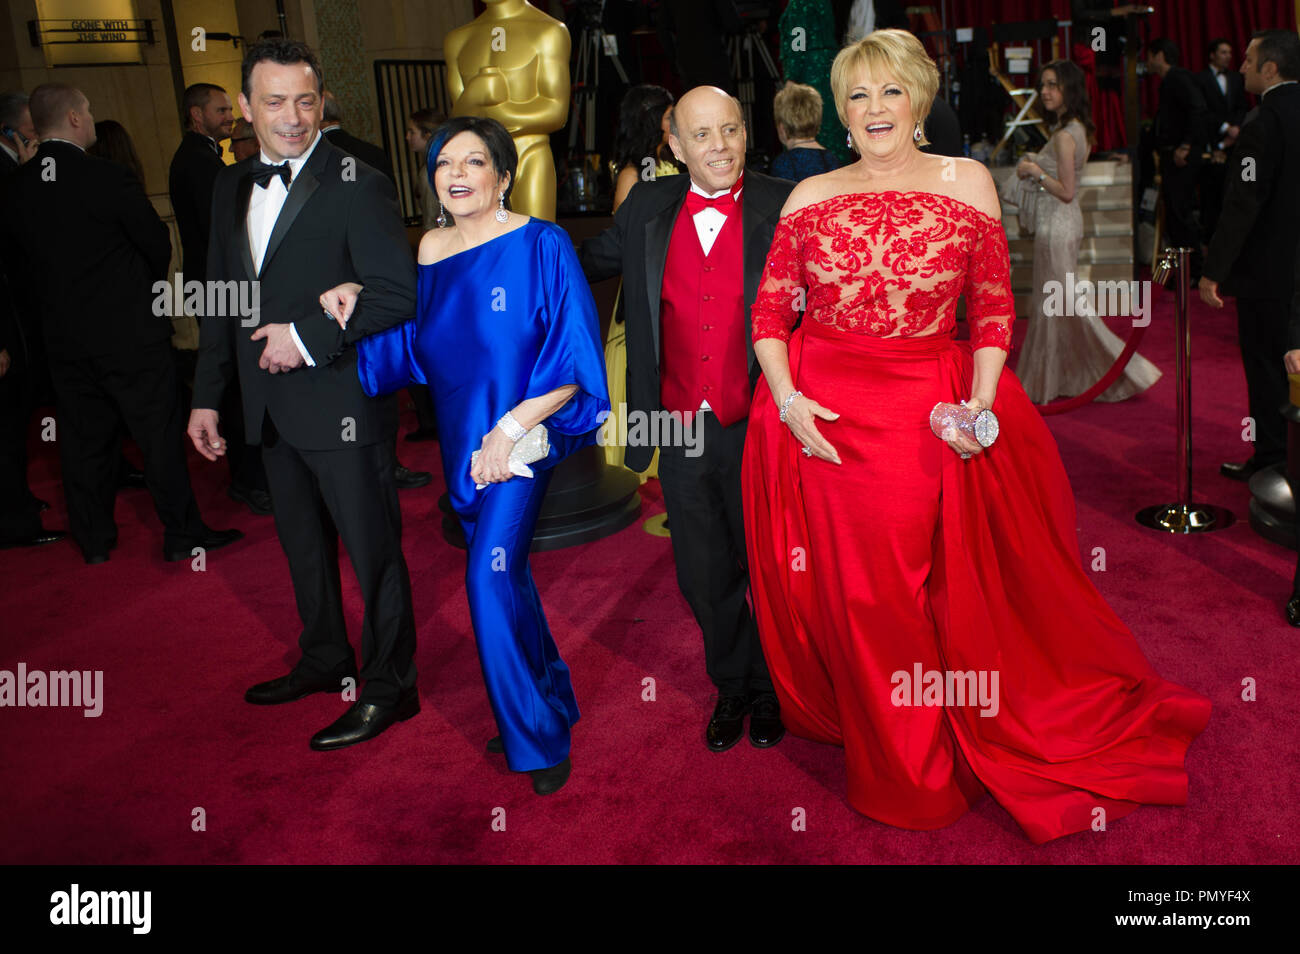 Liza Minnelli and guests arrive for the live ABC Telecast of The 86th Oscars® at the Dolby® Theatre on March 2, 2014 in Hollywood, CA.  File Reference # 32268_120  For Editorial Use Only -  All Rights Reserved - Stock Image